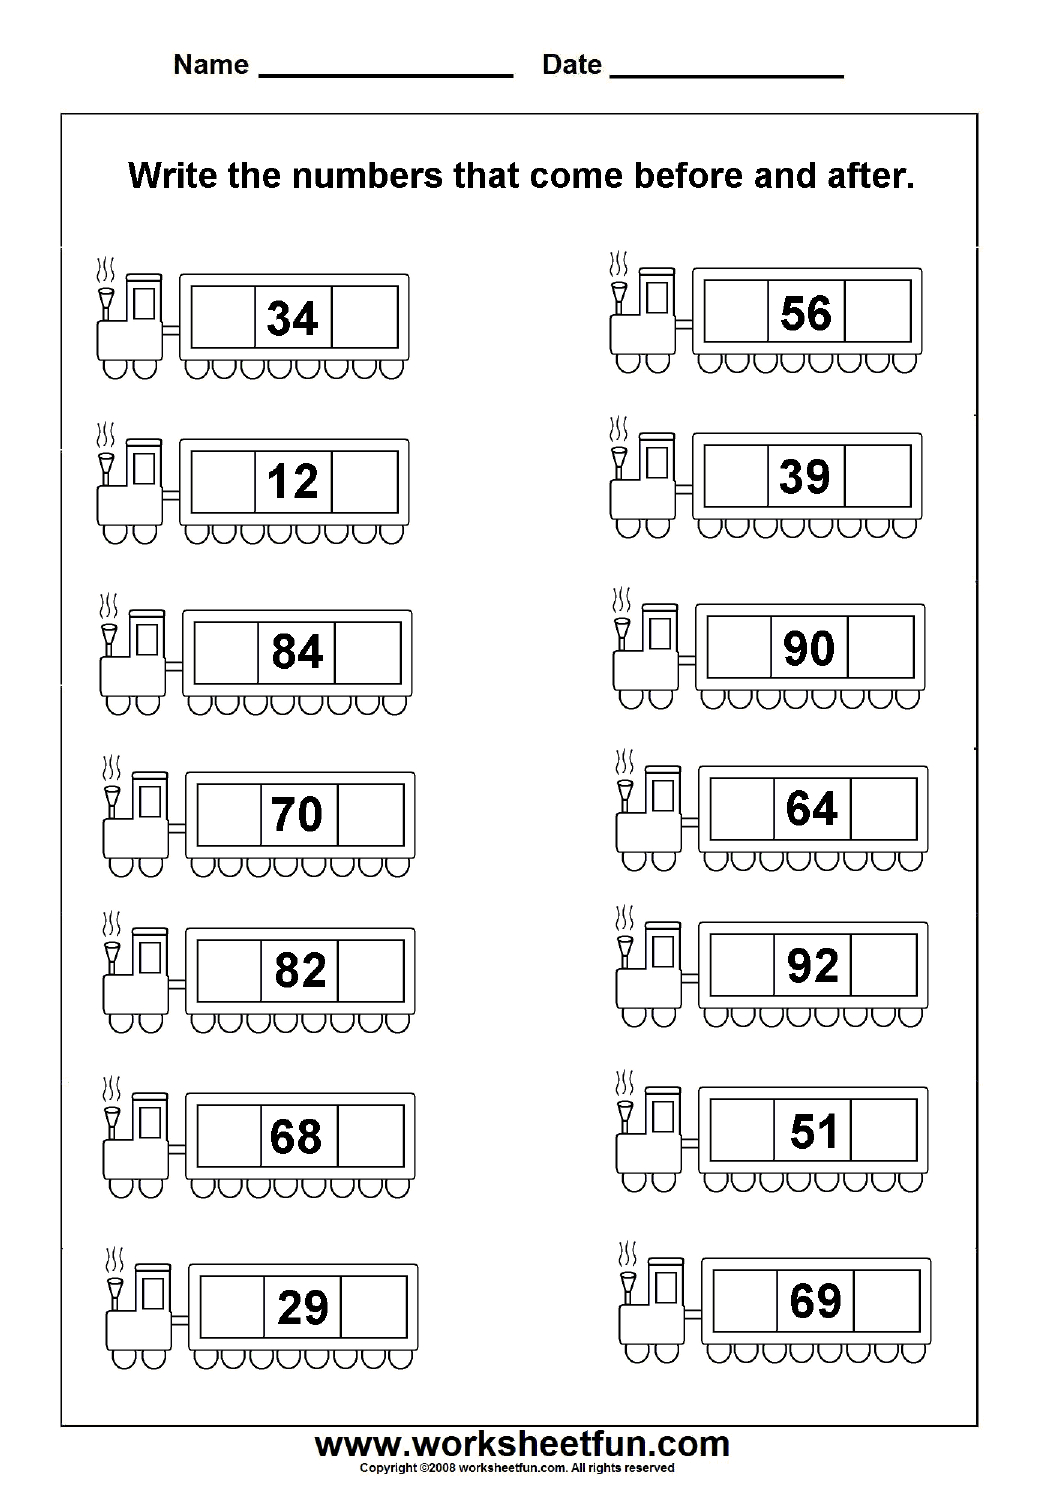 Before & After Numbers - 2 Worksheets   Printable Worksheets   Math - Free Printable Hoy Sheets